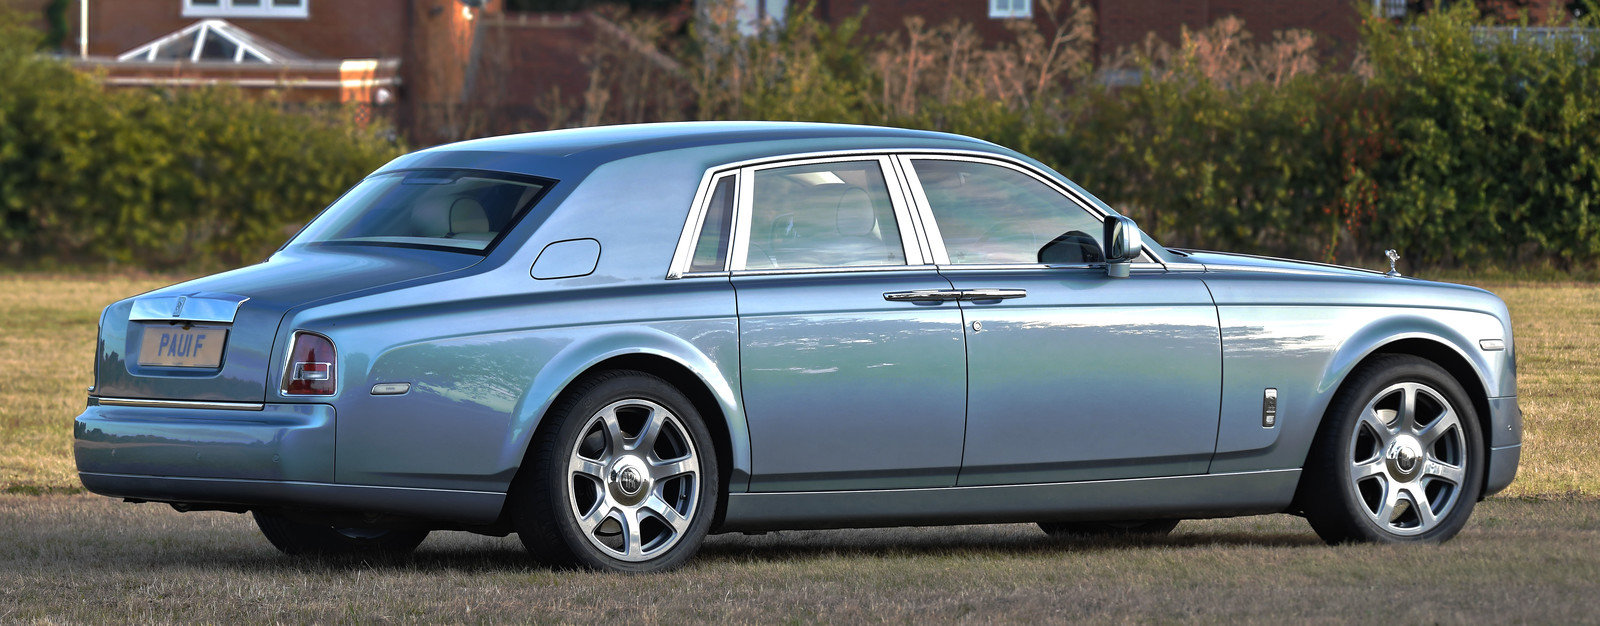 2016 Rolls Royce Phantom 7 For Sale (picture 3 of 6)